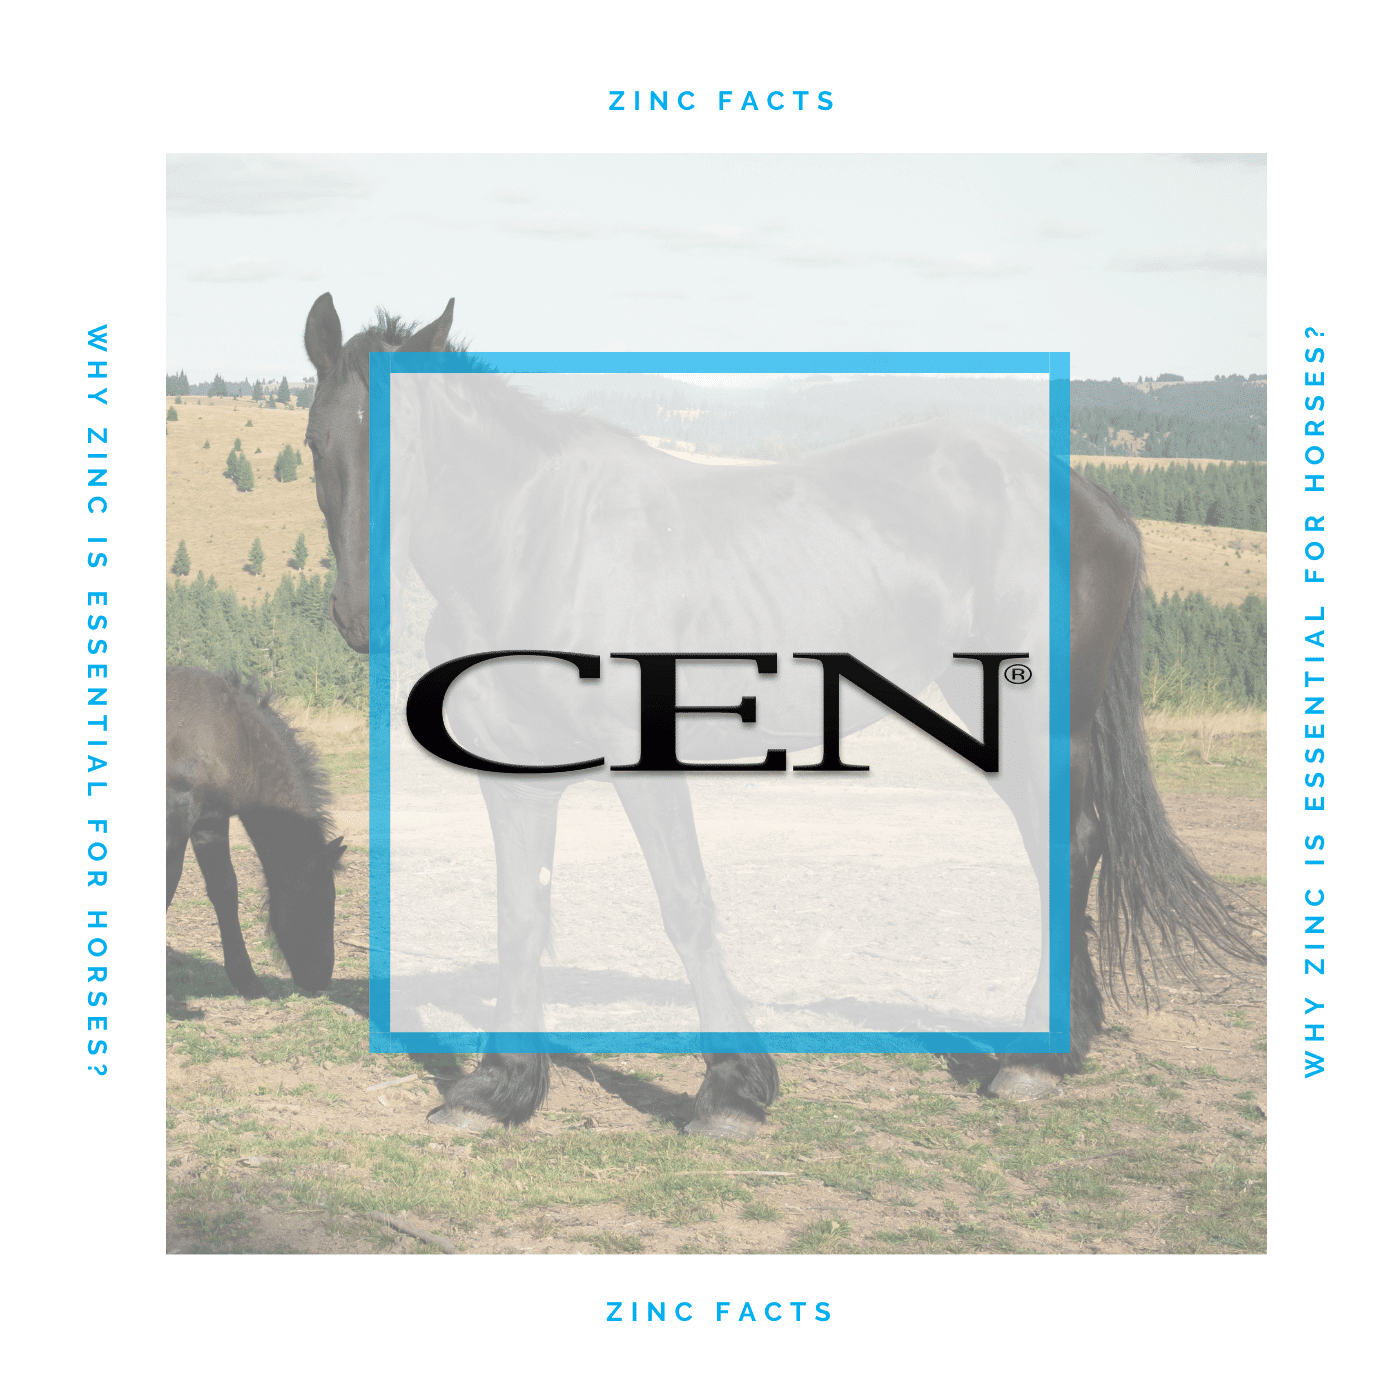 Episode 24 ZINC FACTS - Why Zinc Is Essential For Horses